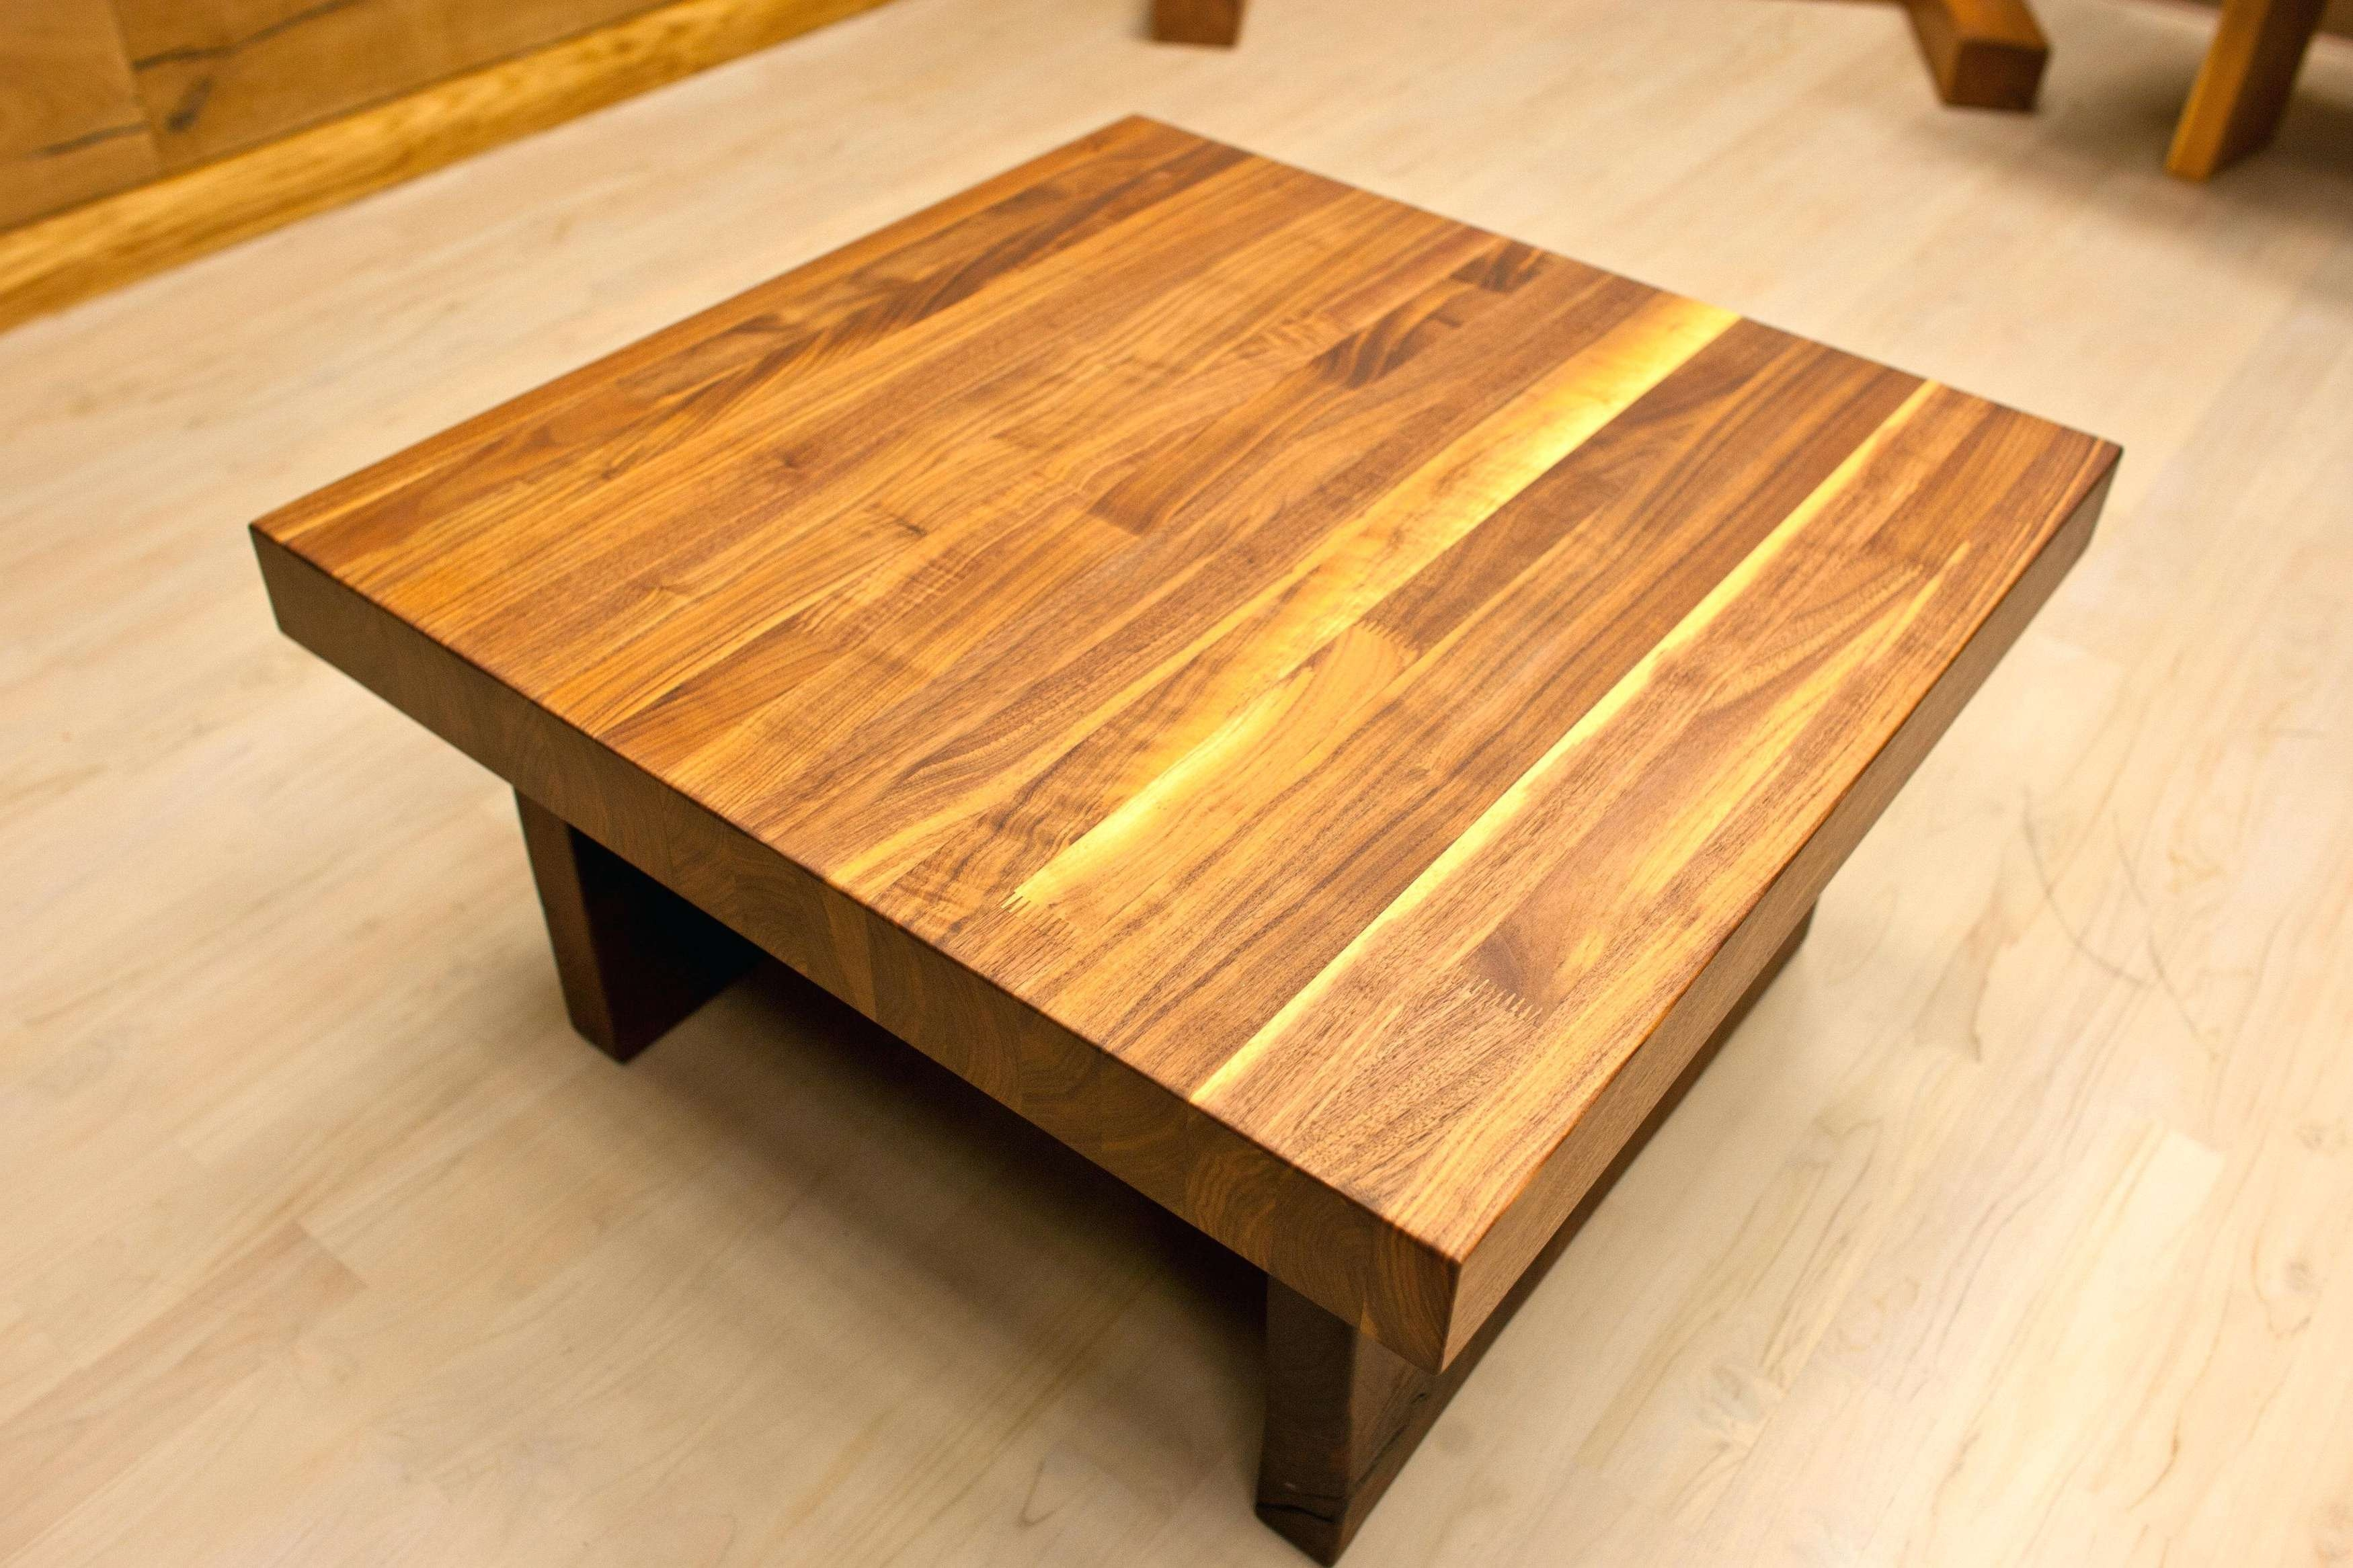 Widely Used Large Low Wood Coffee Tables For Coffee Table Wood Table For Tremendous Large Square Coffee Rustic (View 19 of 20)